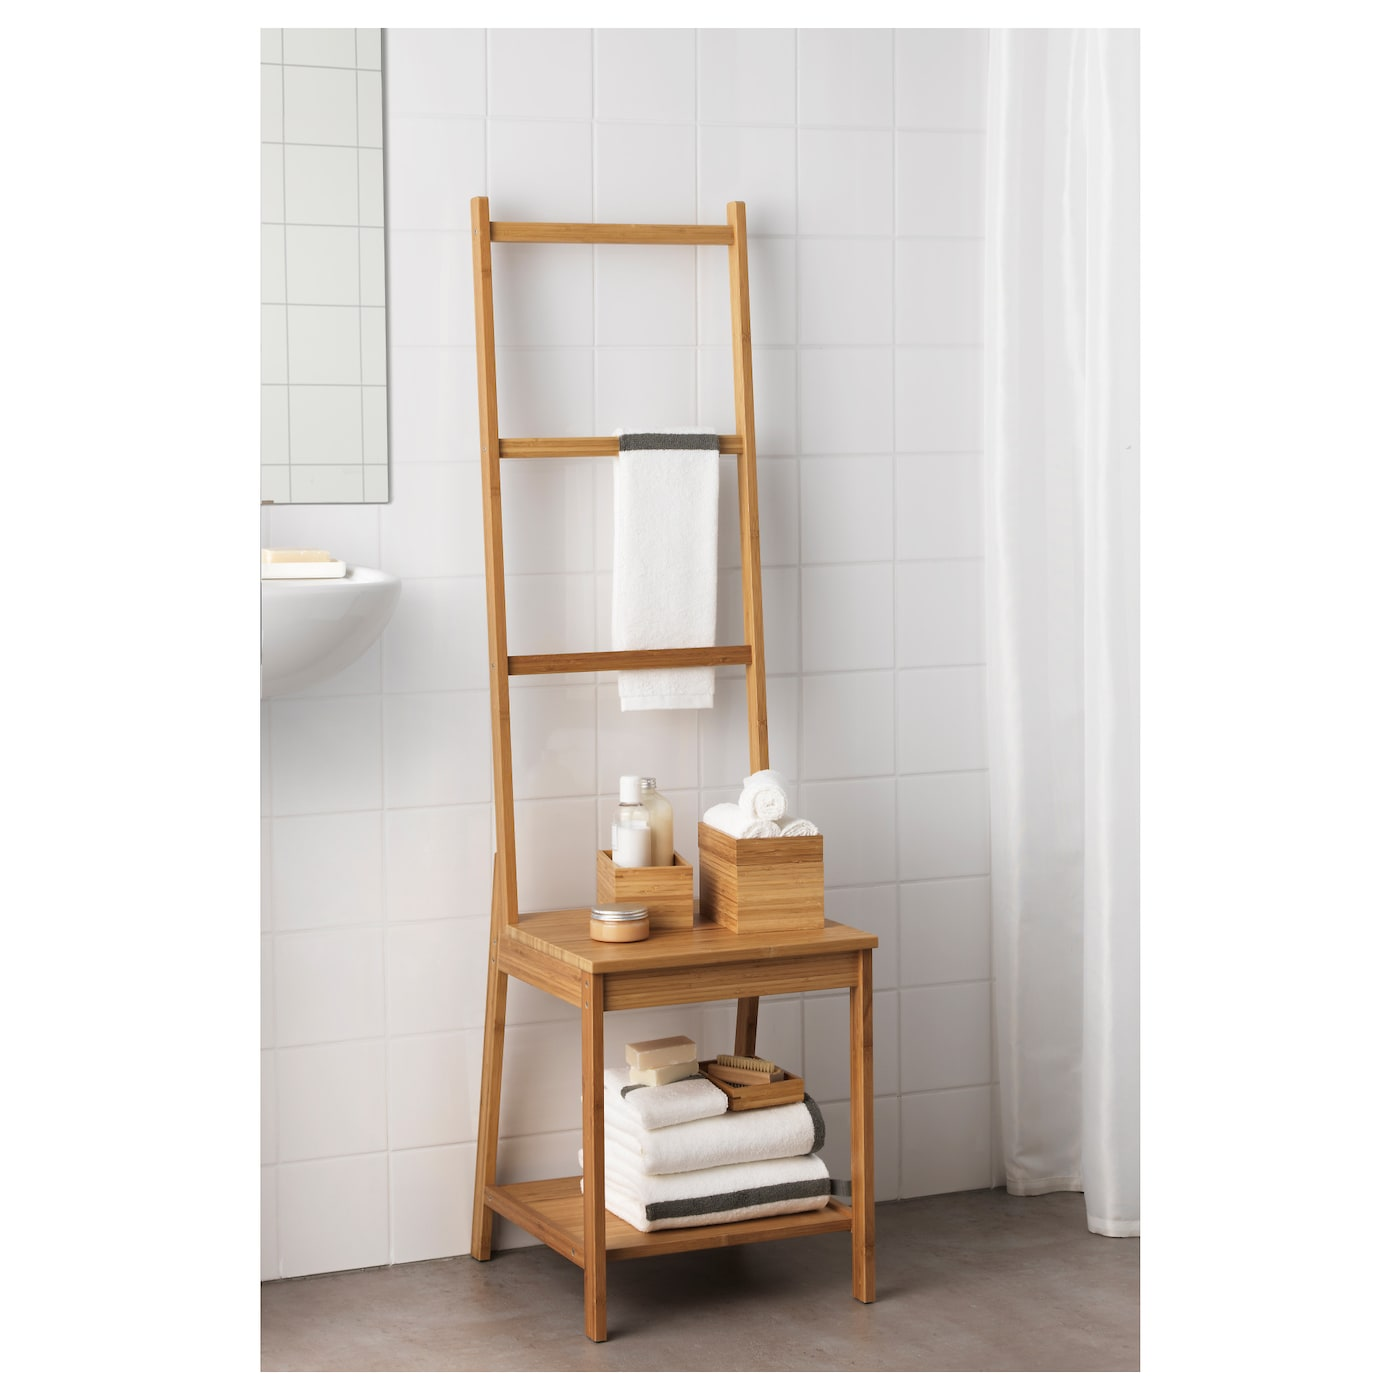 IKEA RÅGRUND towel rack chair Bamboo is a hardwearing natural material.